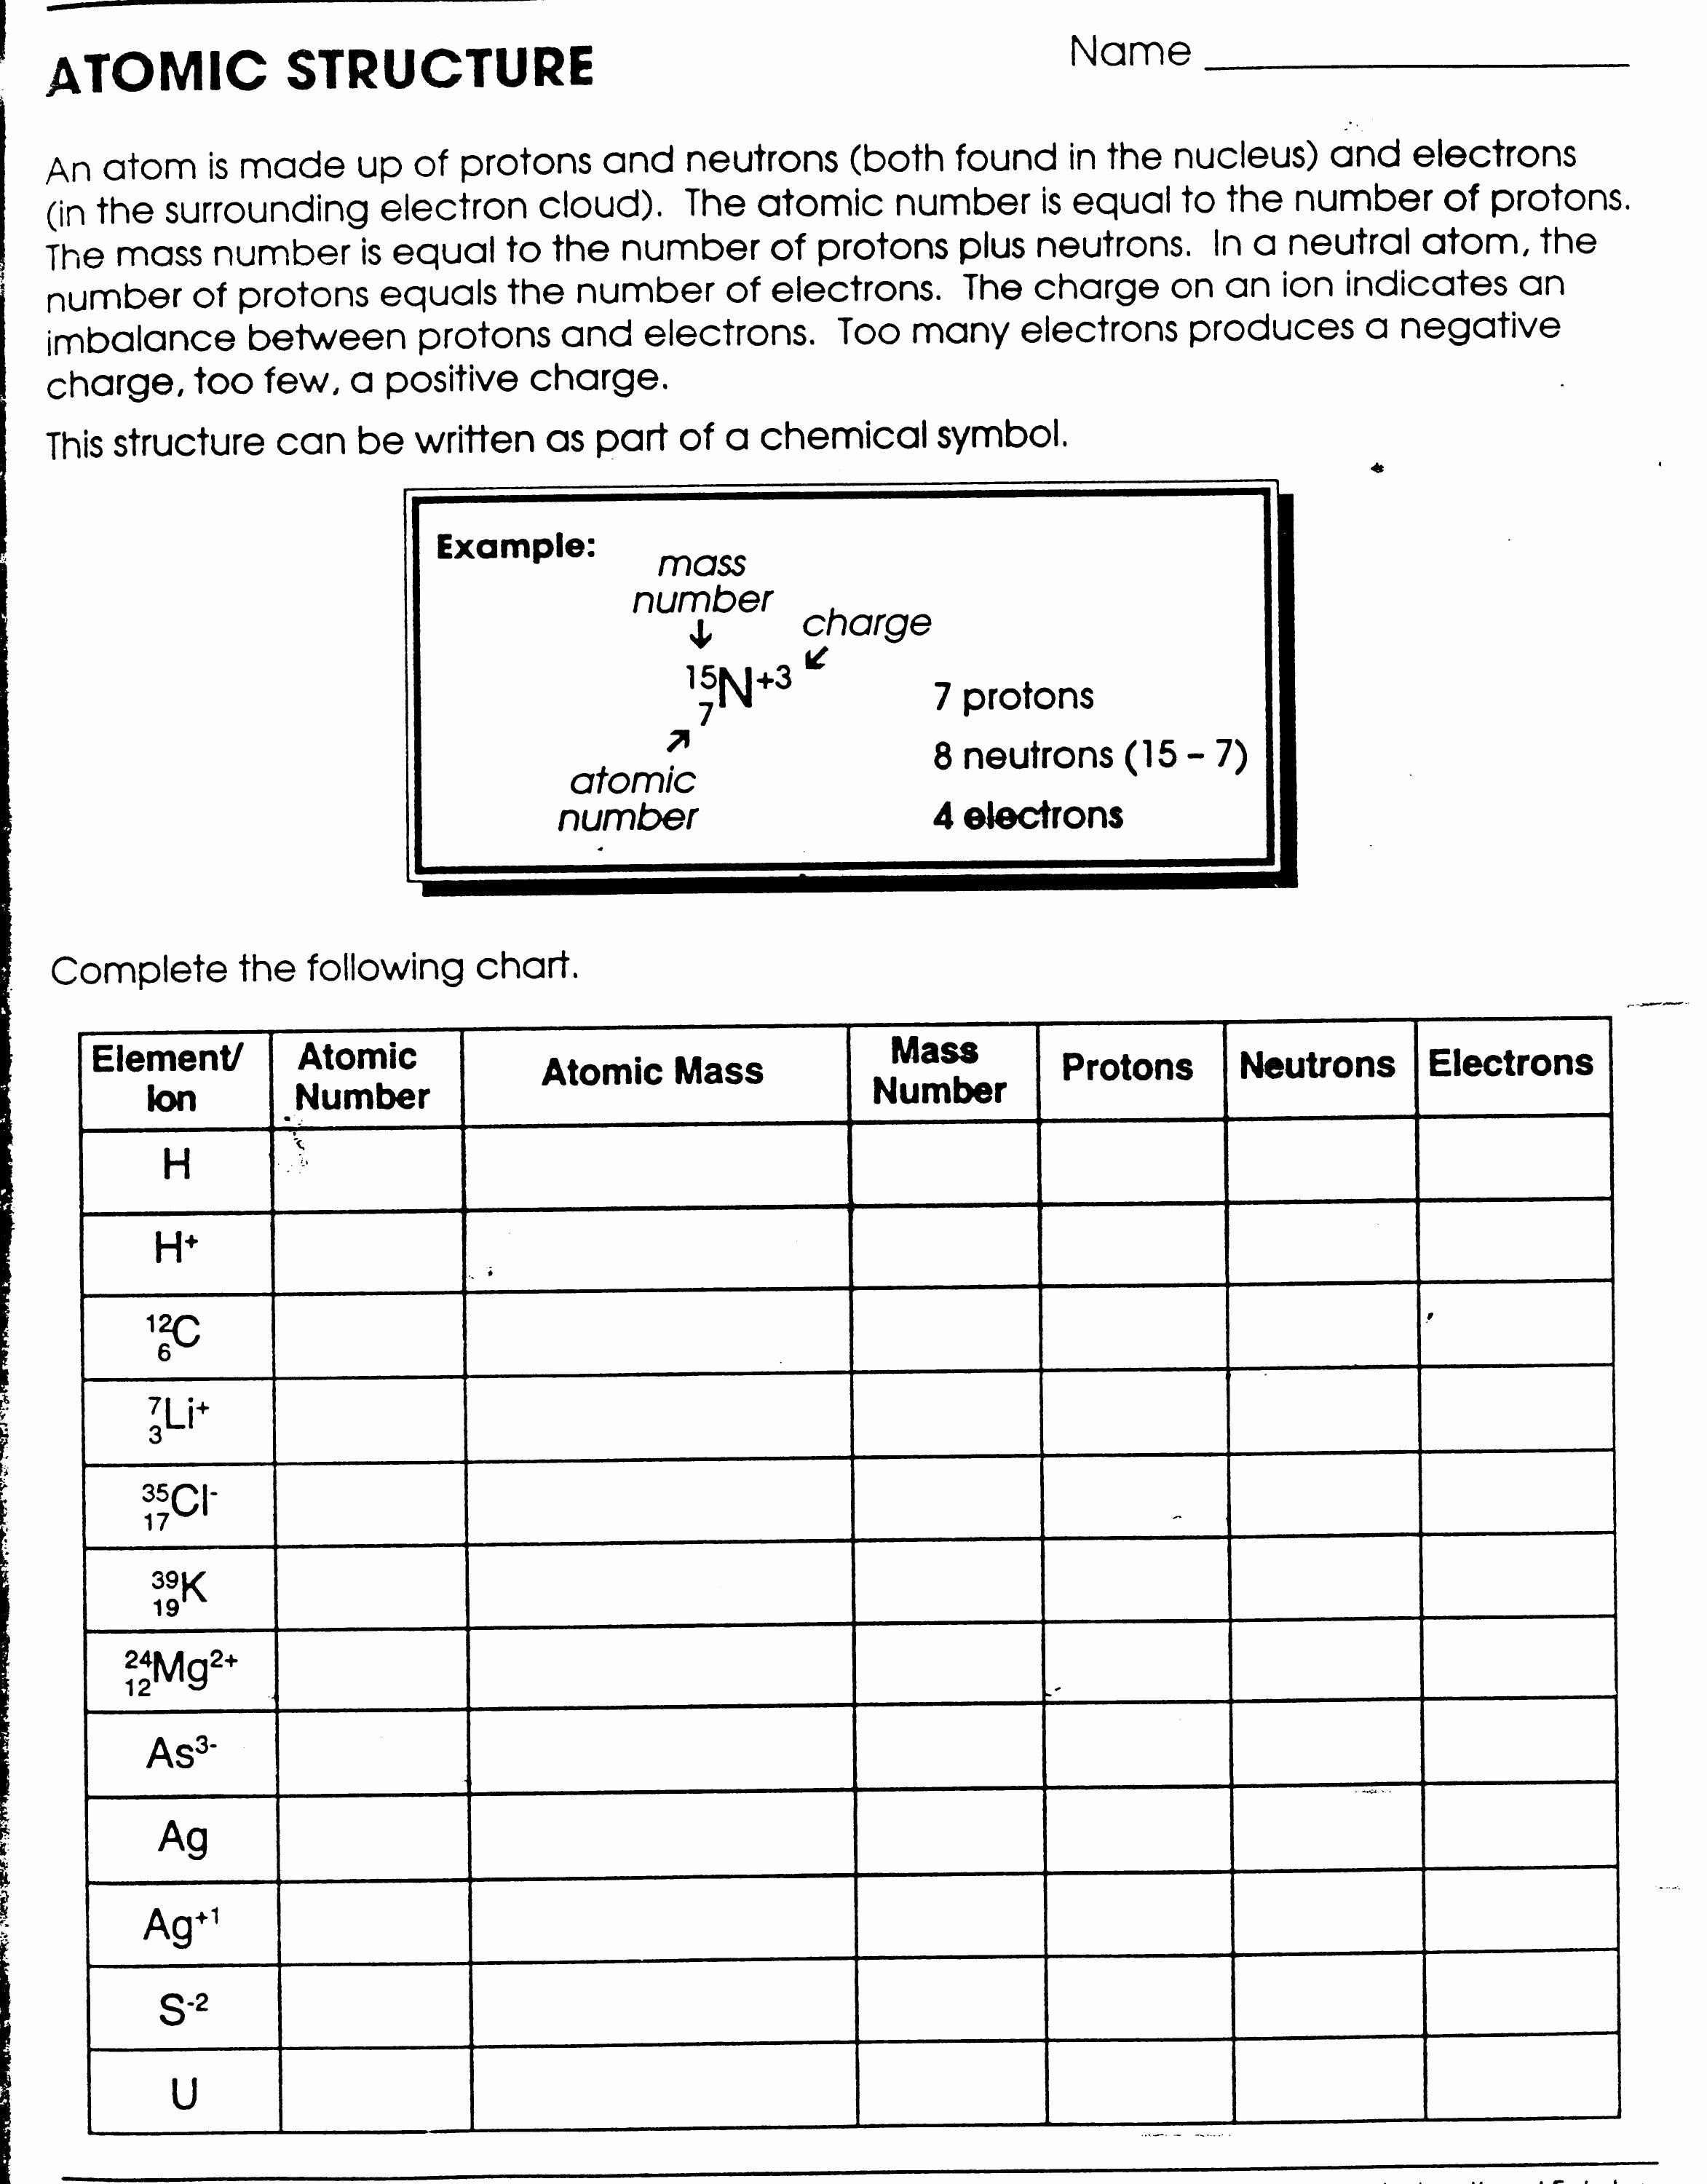 50 Worksheet Atomic Structure Answers